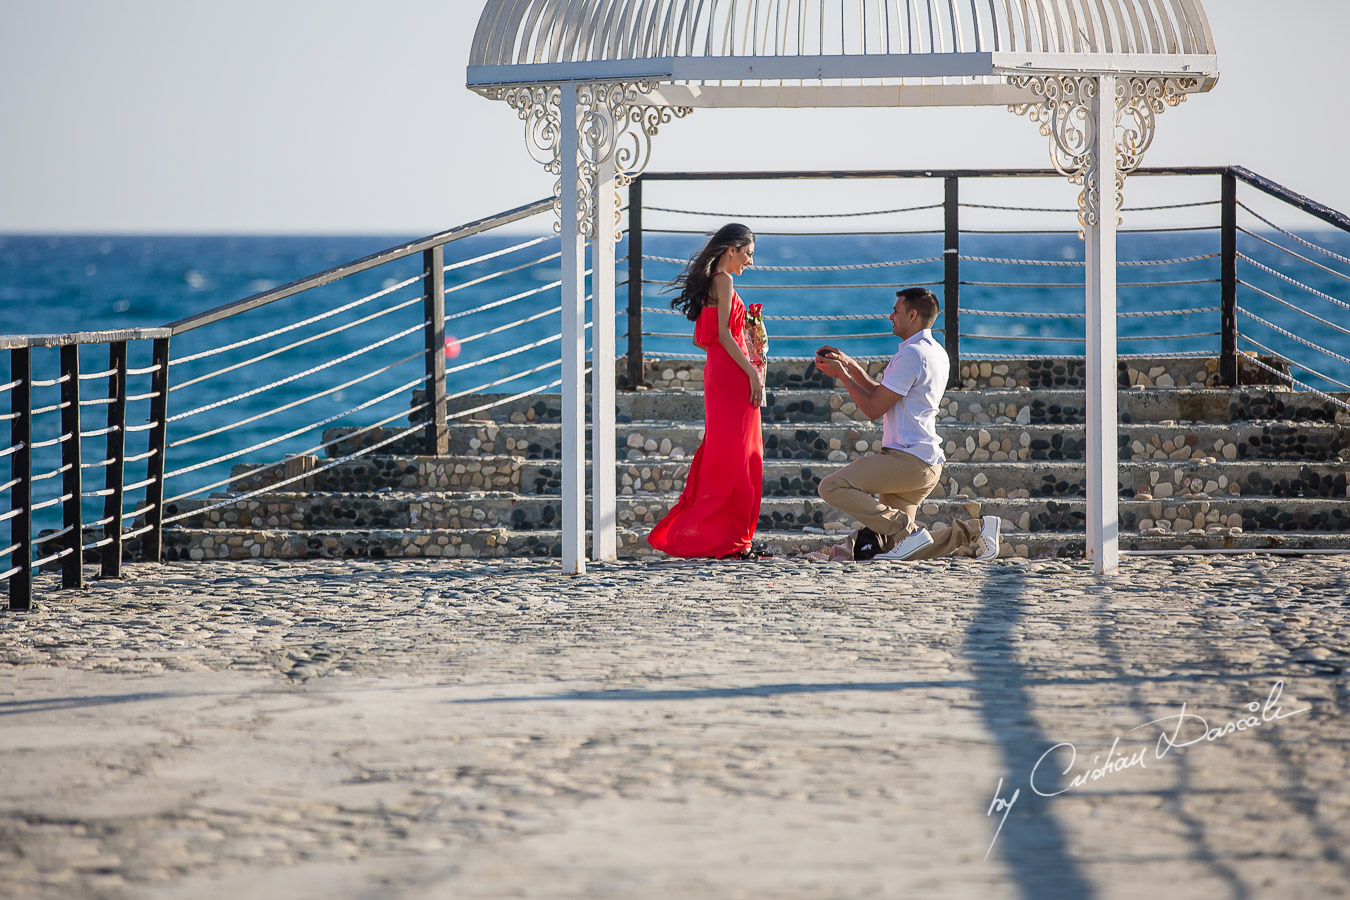 Beach Proposal Photo Session - 12